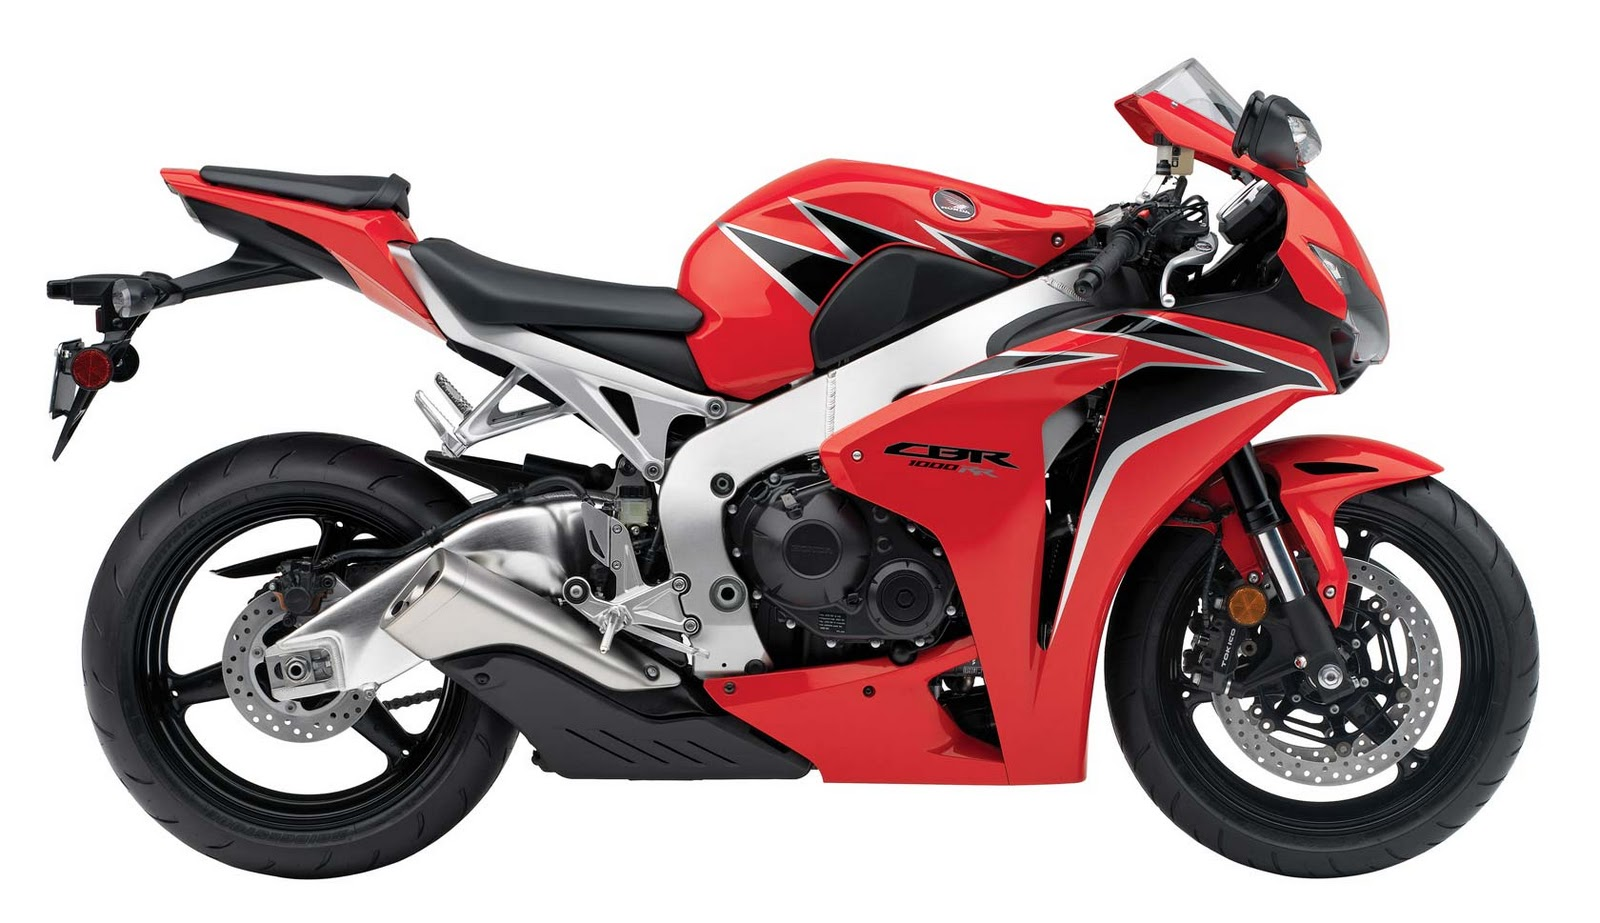 Motorcycle Pictures Honda Cbr 1000 Rr 2011